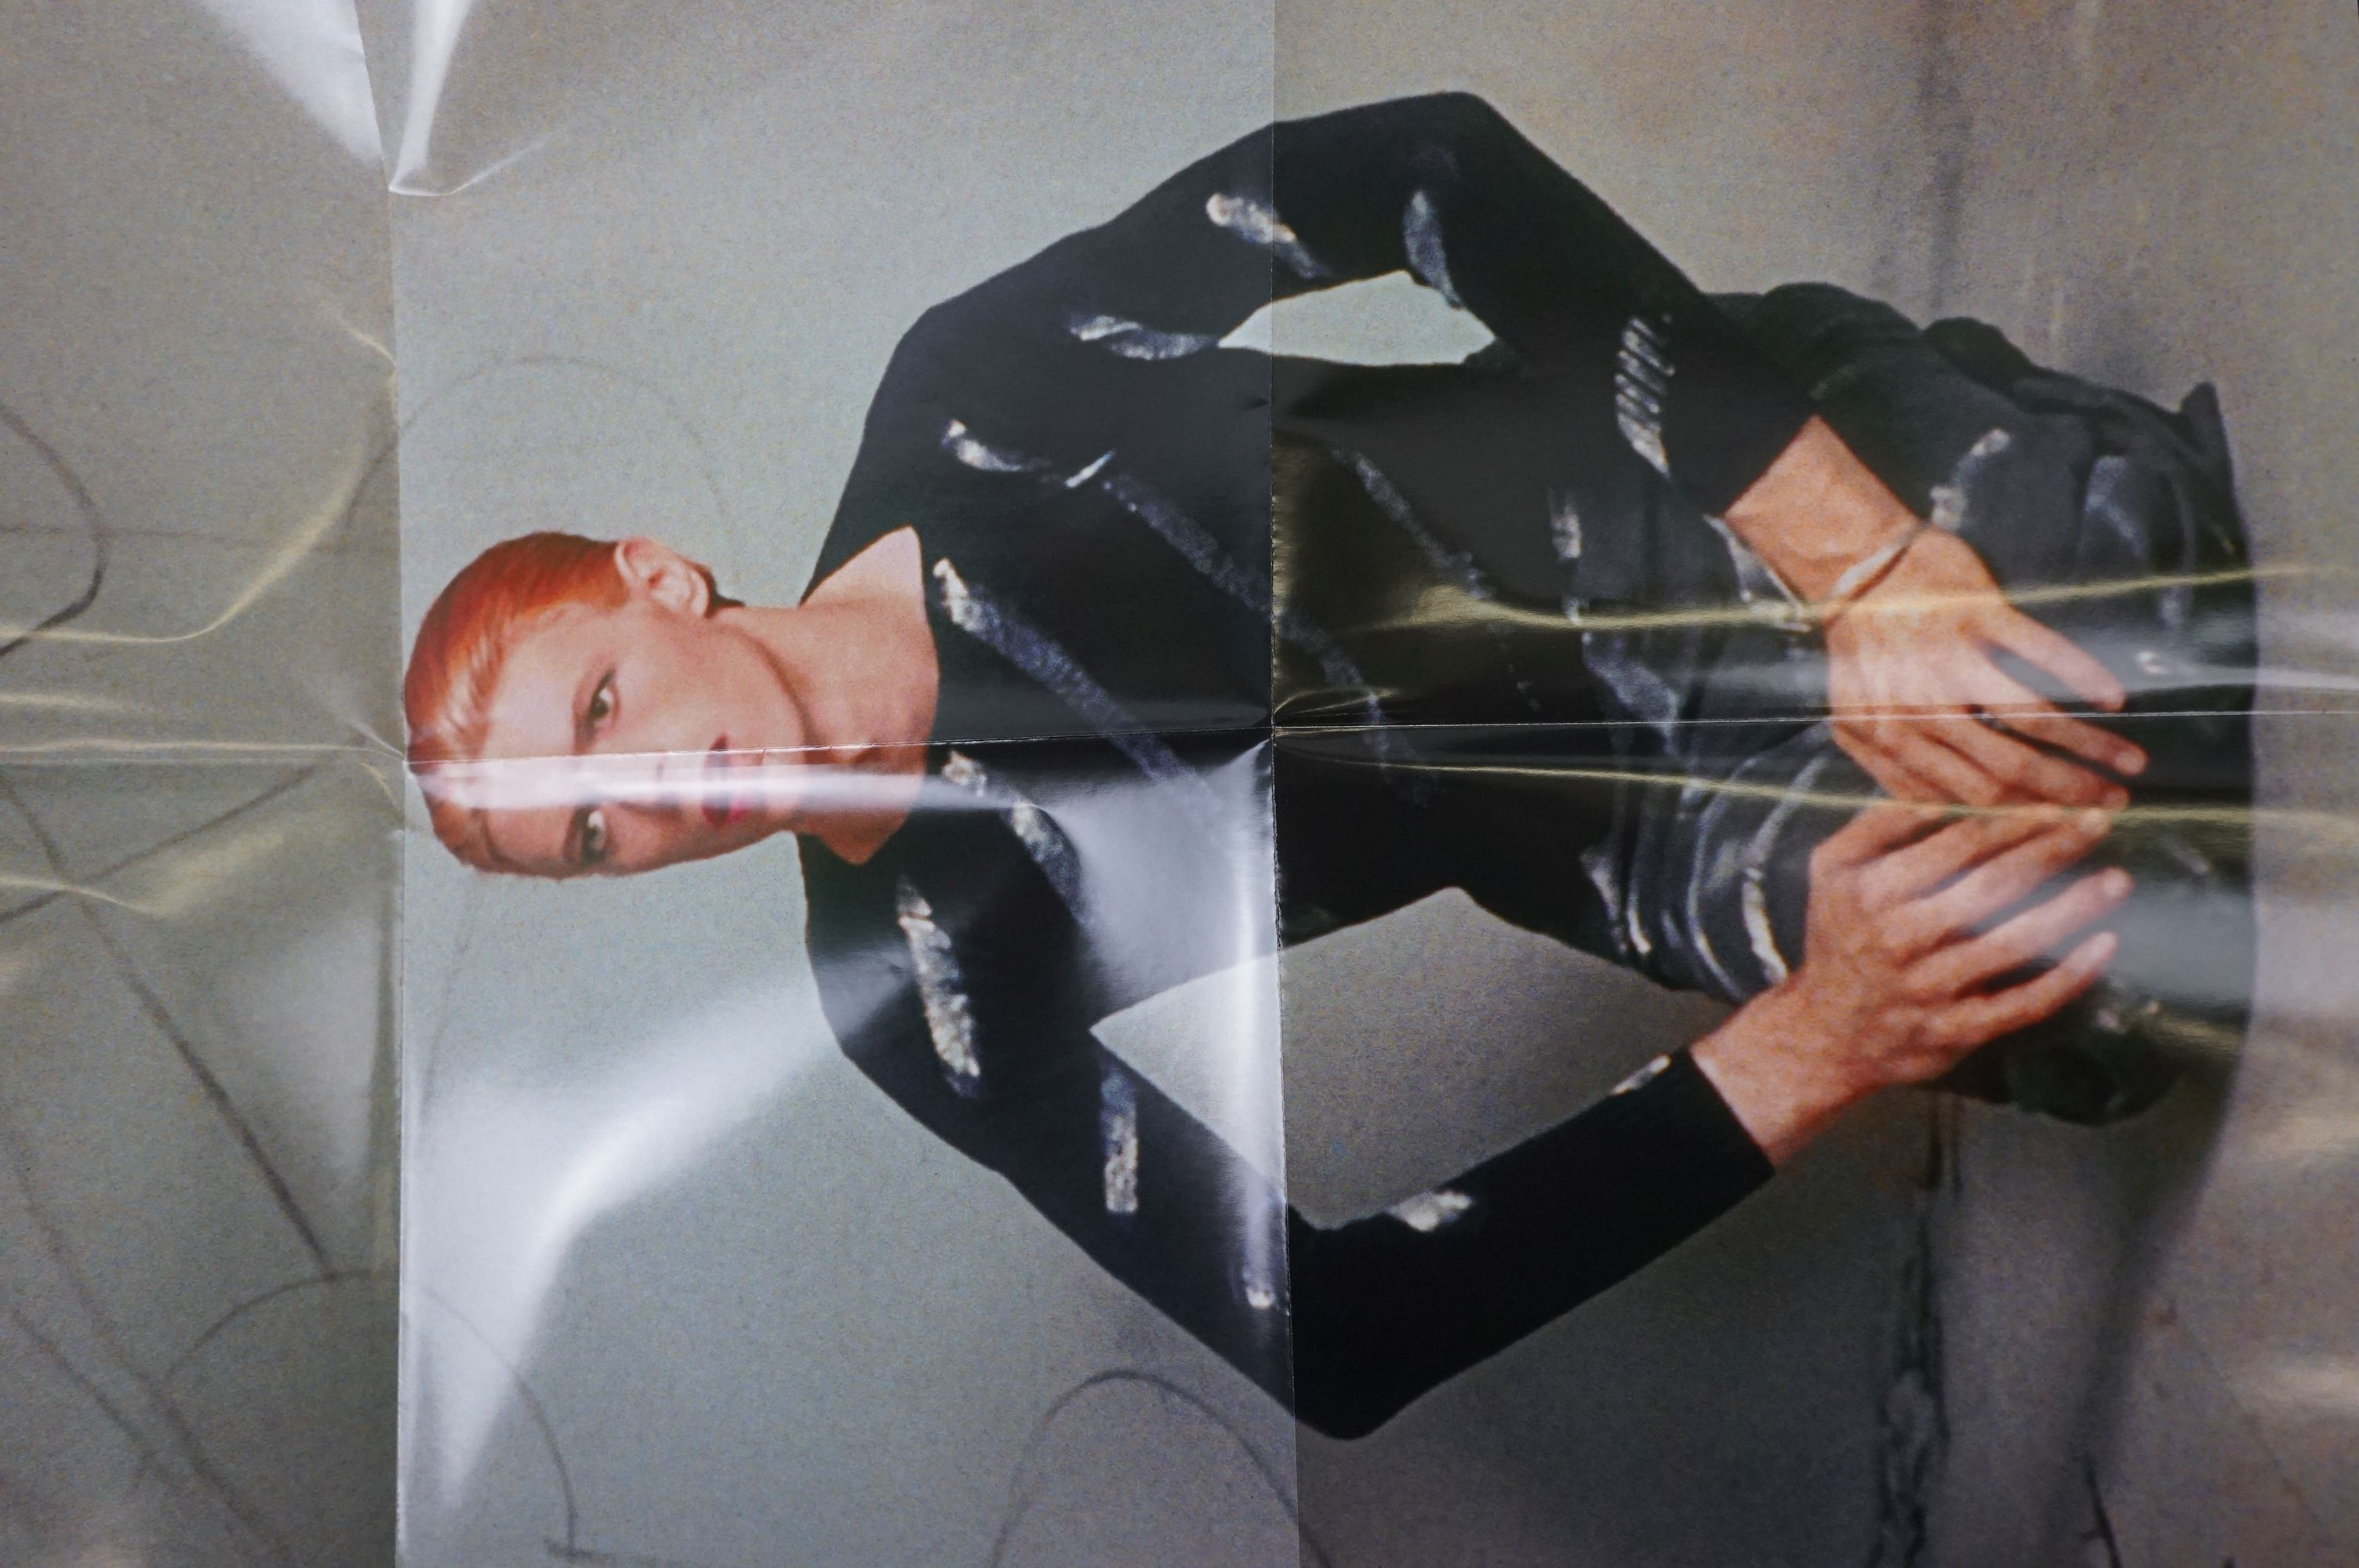 Vinyl / CD / DVD - David Bowie Station To Station Deluxe Box Set, vg - Image 14 of 15